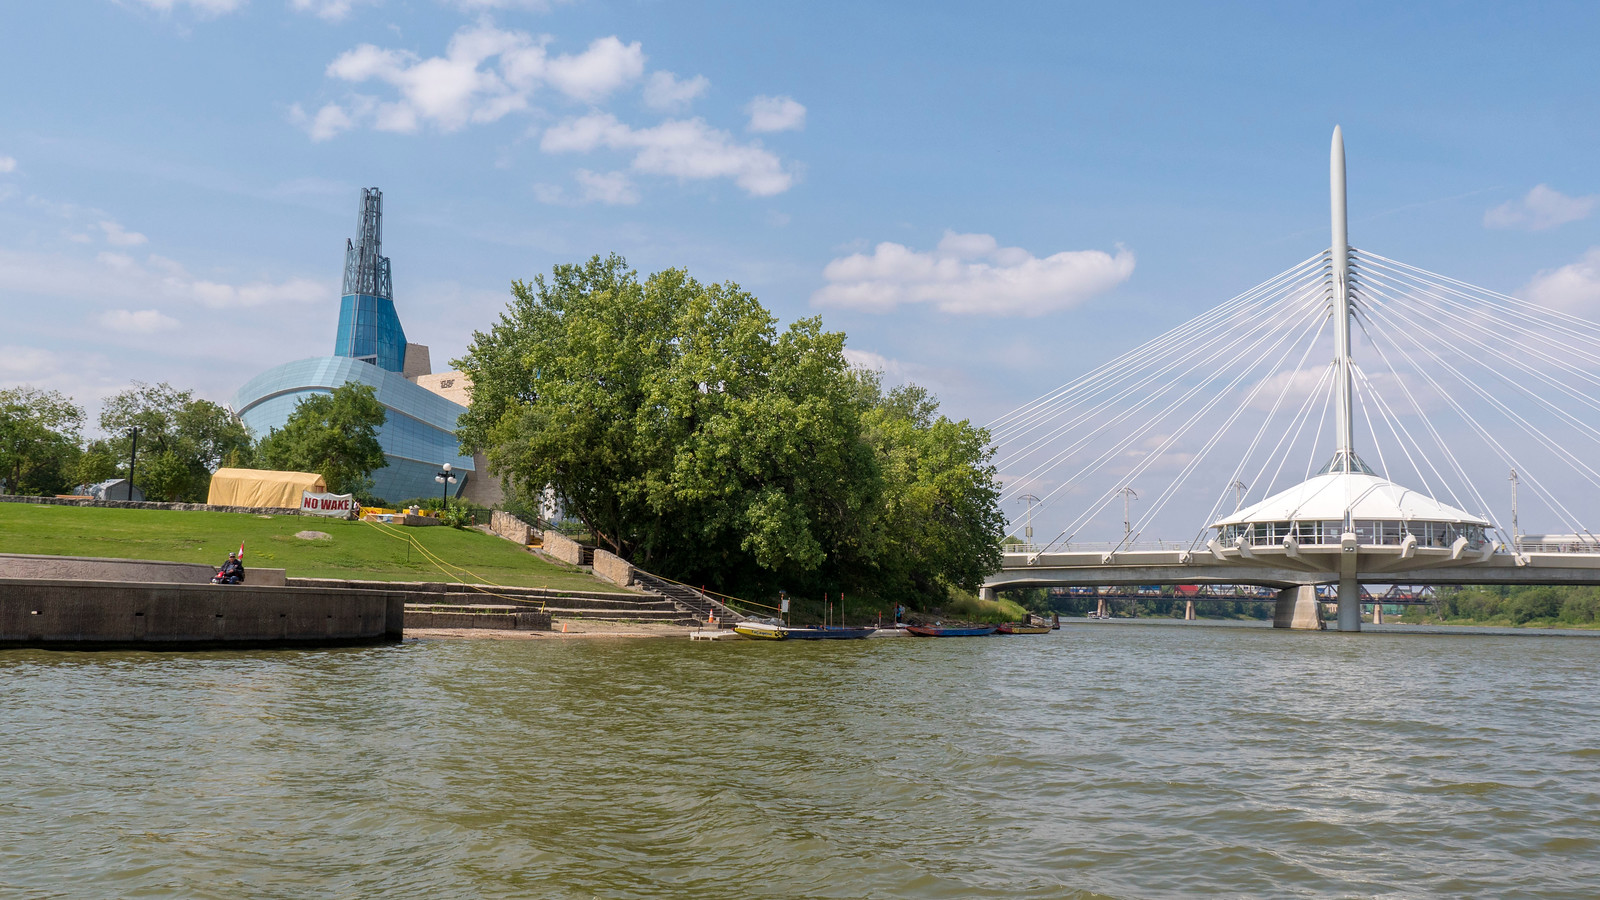 Splash Dash boat tour of Winnipeg - Things to Do in Winnipeg: A Couples Getaway Guide